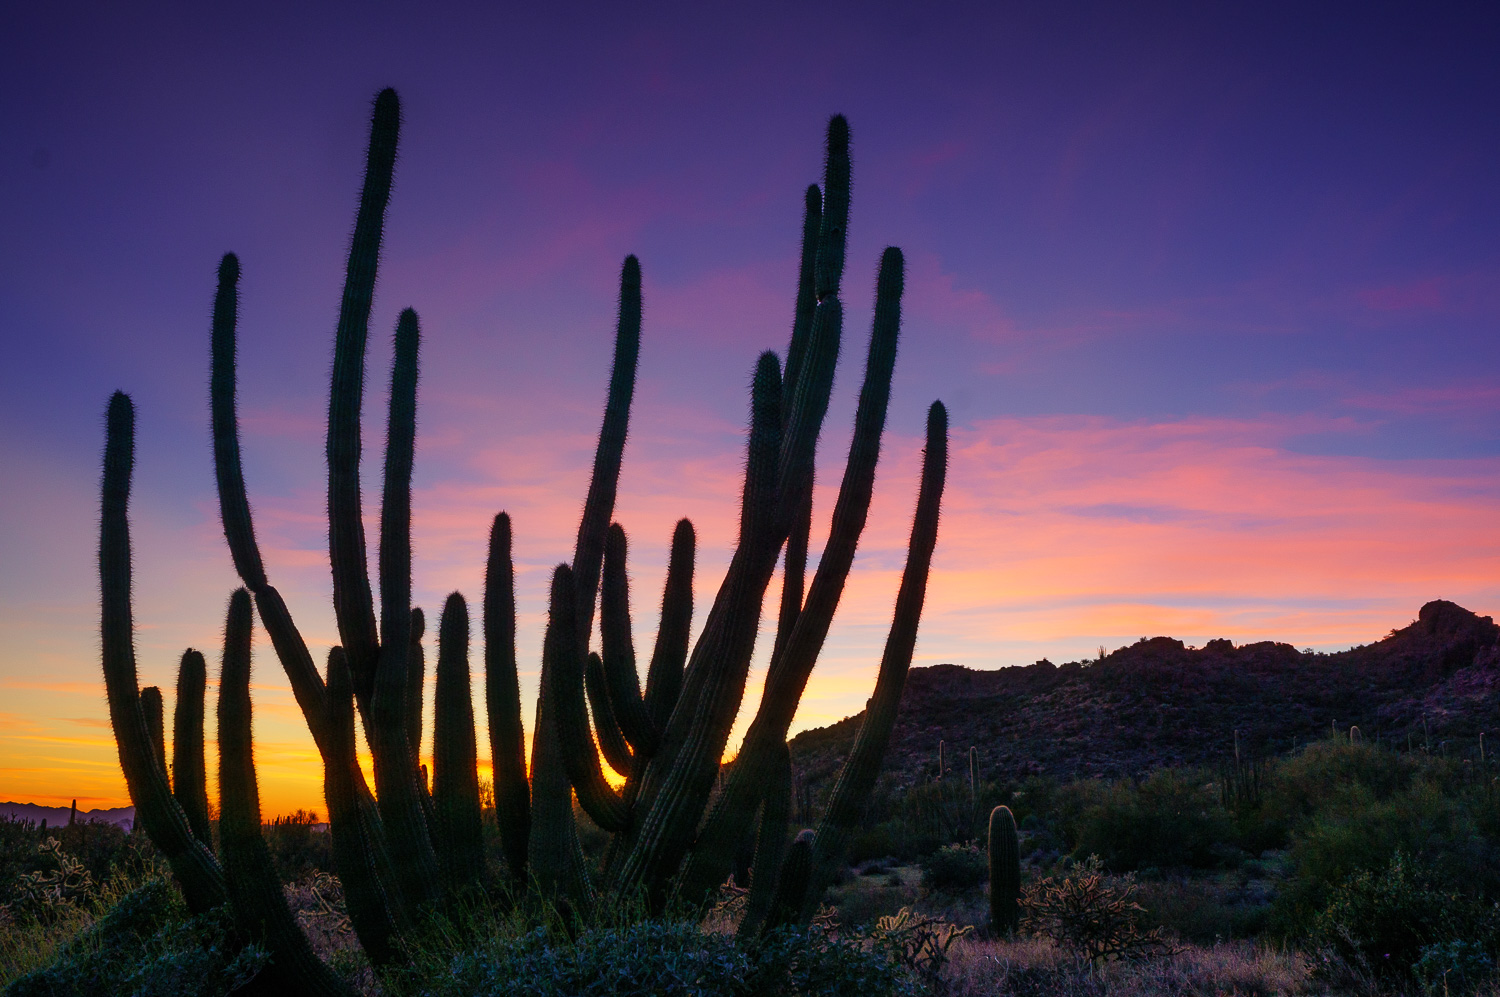 Organ Pipe Cactus by Anne McKinnell - Beginner's Guide to Natural Light in Landscape Photography